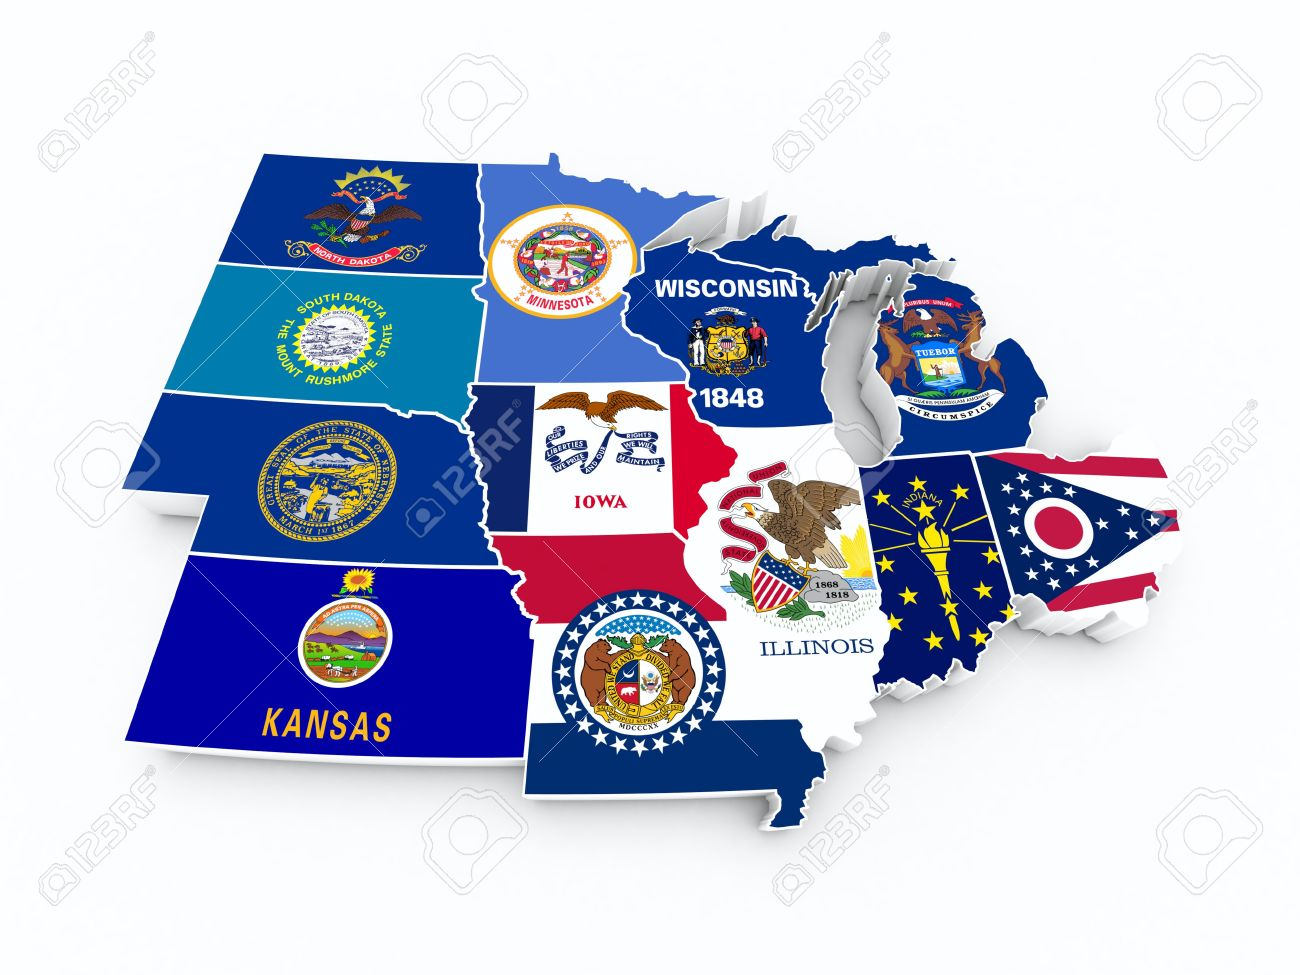 Map Usa Midwest Region Stock Photo Picture And Royalty Free Image - Map us midwest